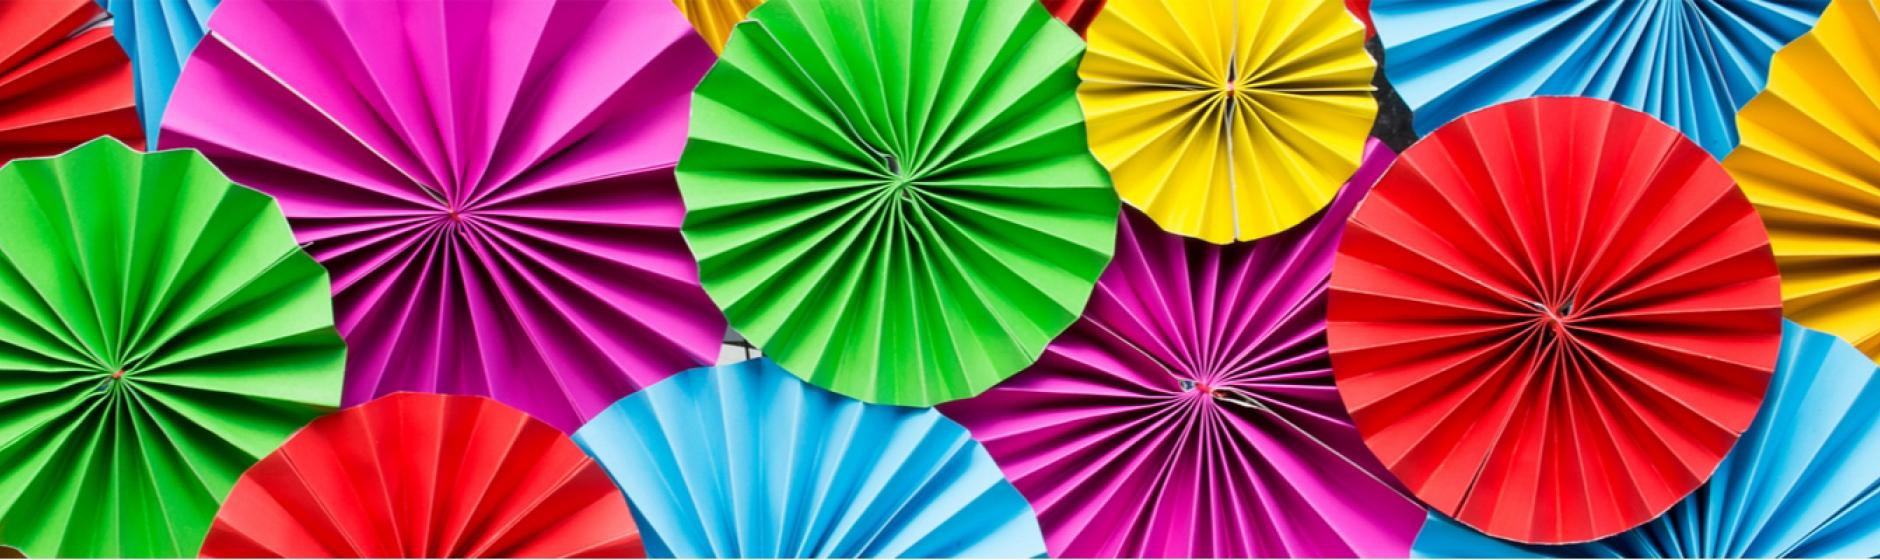 multicolored paper umbrellas